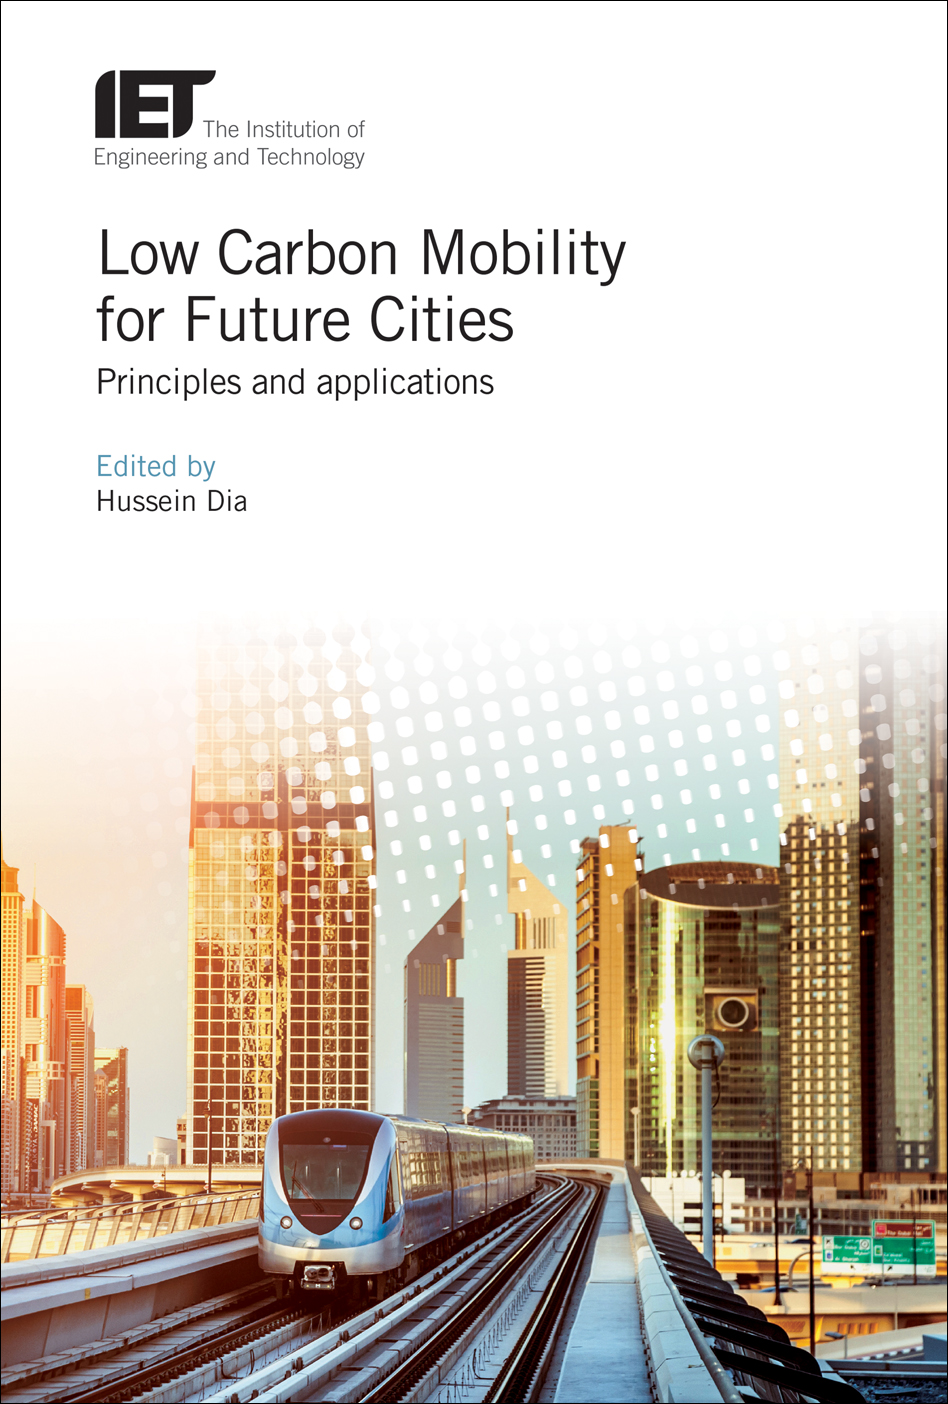 Low Carbon Mobility for Future Cities, Principles and applications